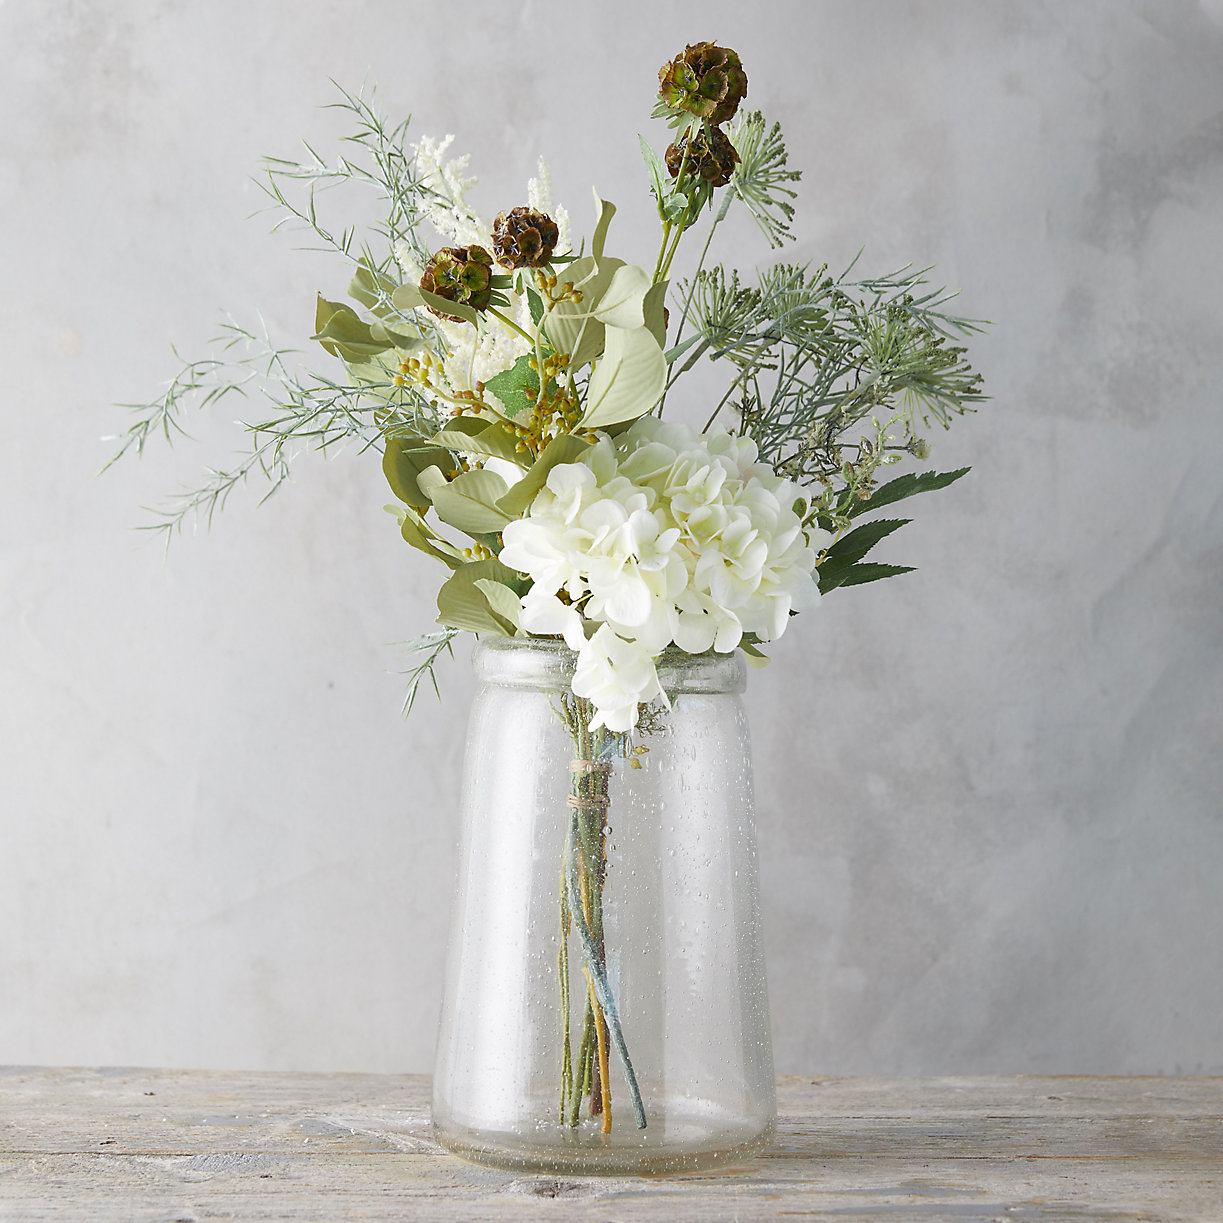 Make a statement with these stunning faux flowers. We won't tell they're fake if you won't…